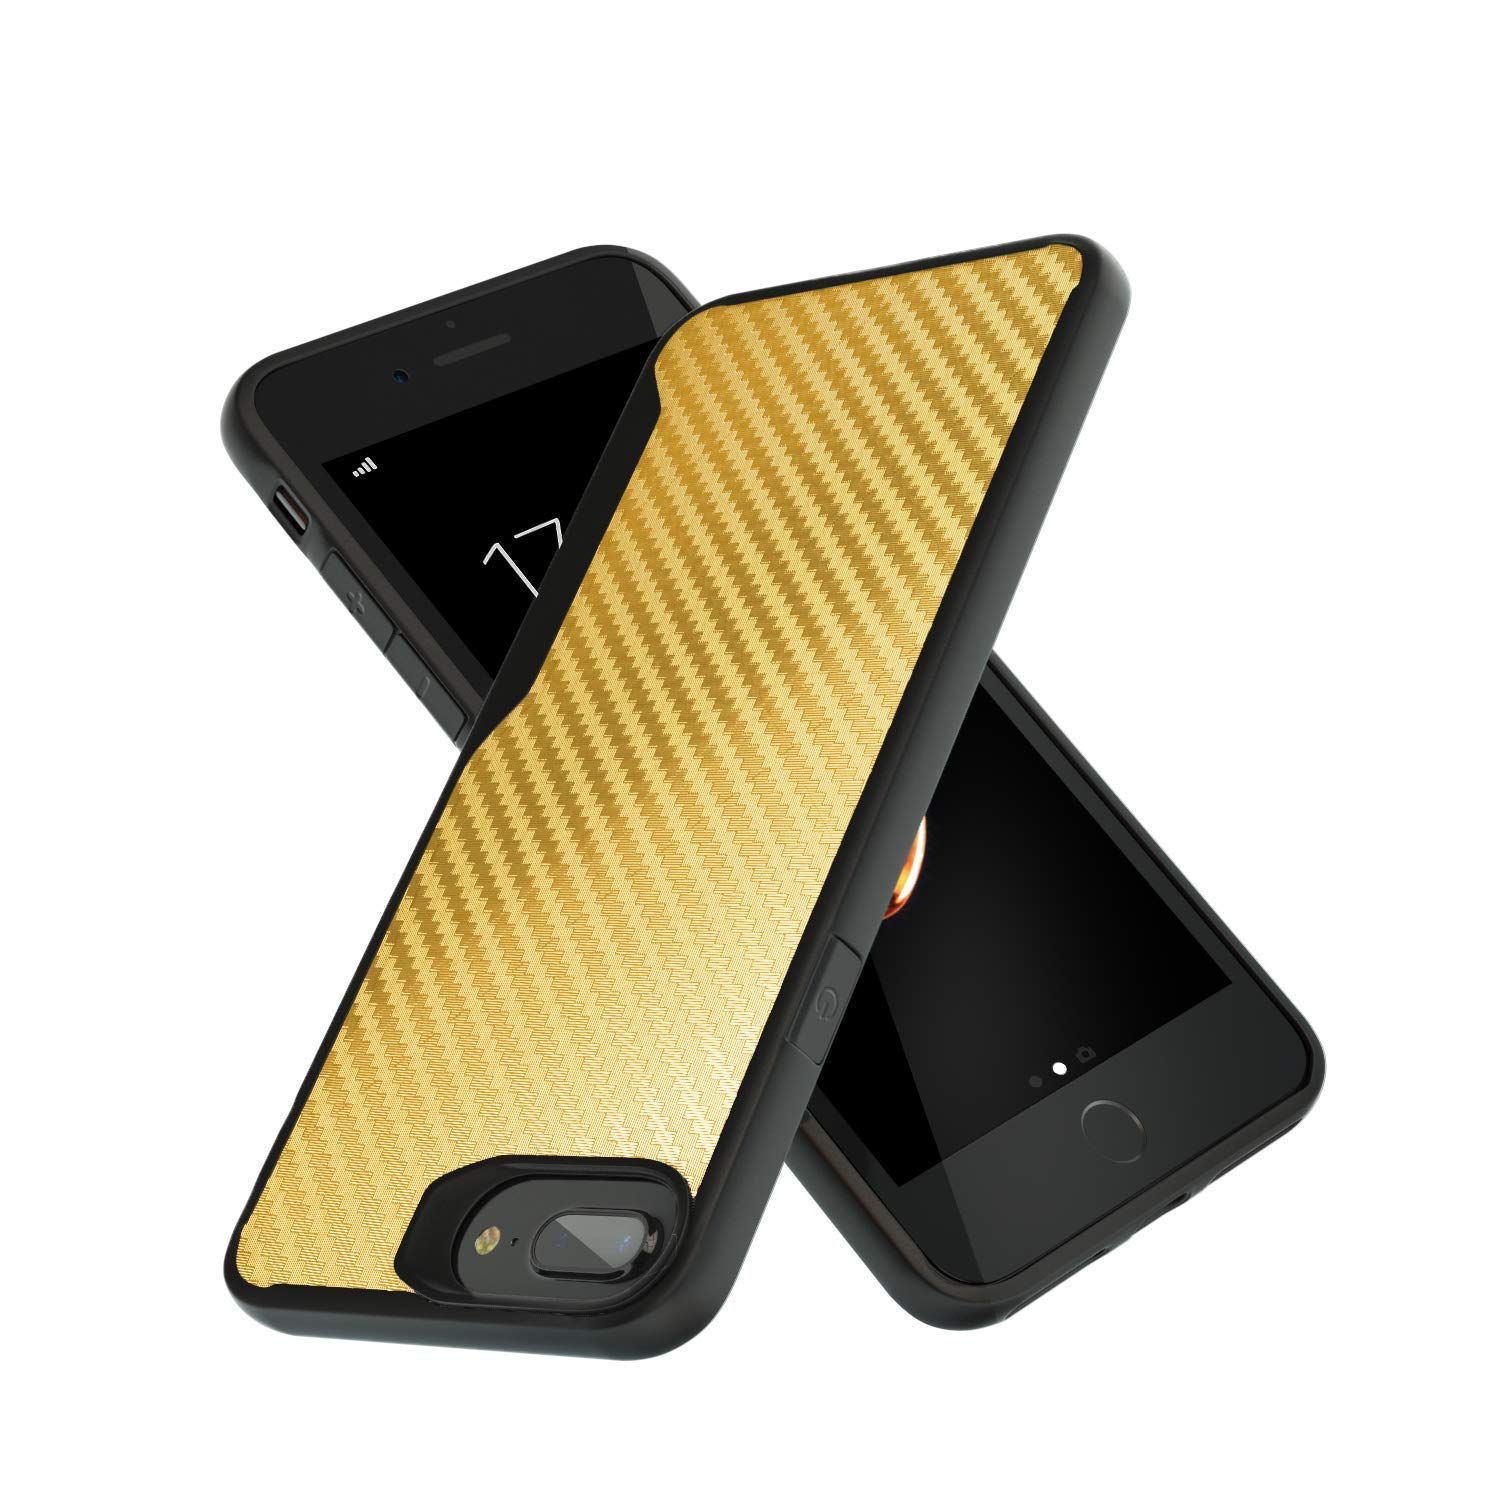 Kitoo iPhone 7 Plus Case/iPhone 8 Plus Case, 10ft. Drop Tested Carbon Case, Ultra Slim, Lightweight, Scratch Resistant, Compatible with Apple iPhone 7 Plus/iPhone 8 Plus - Black